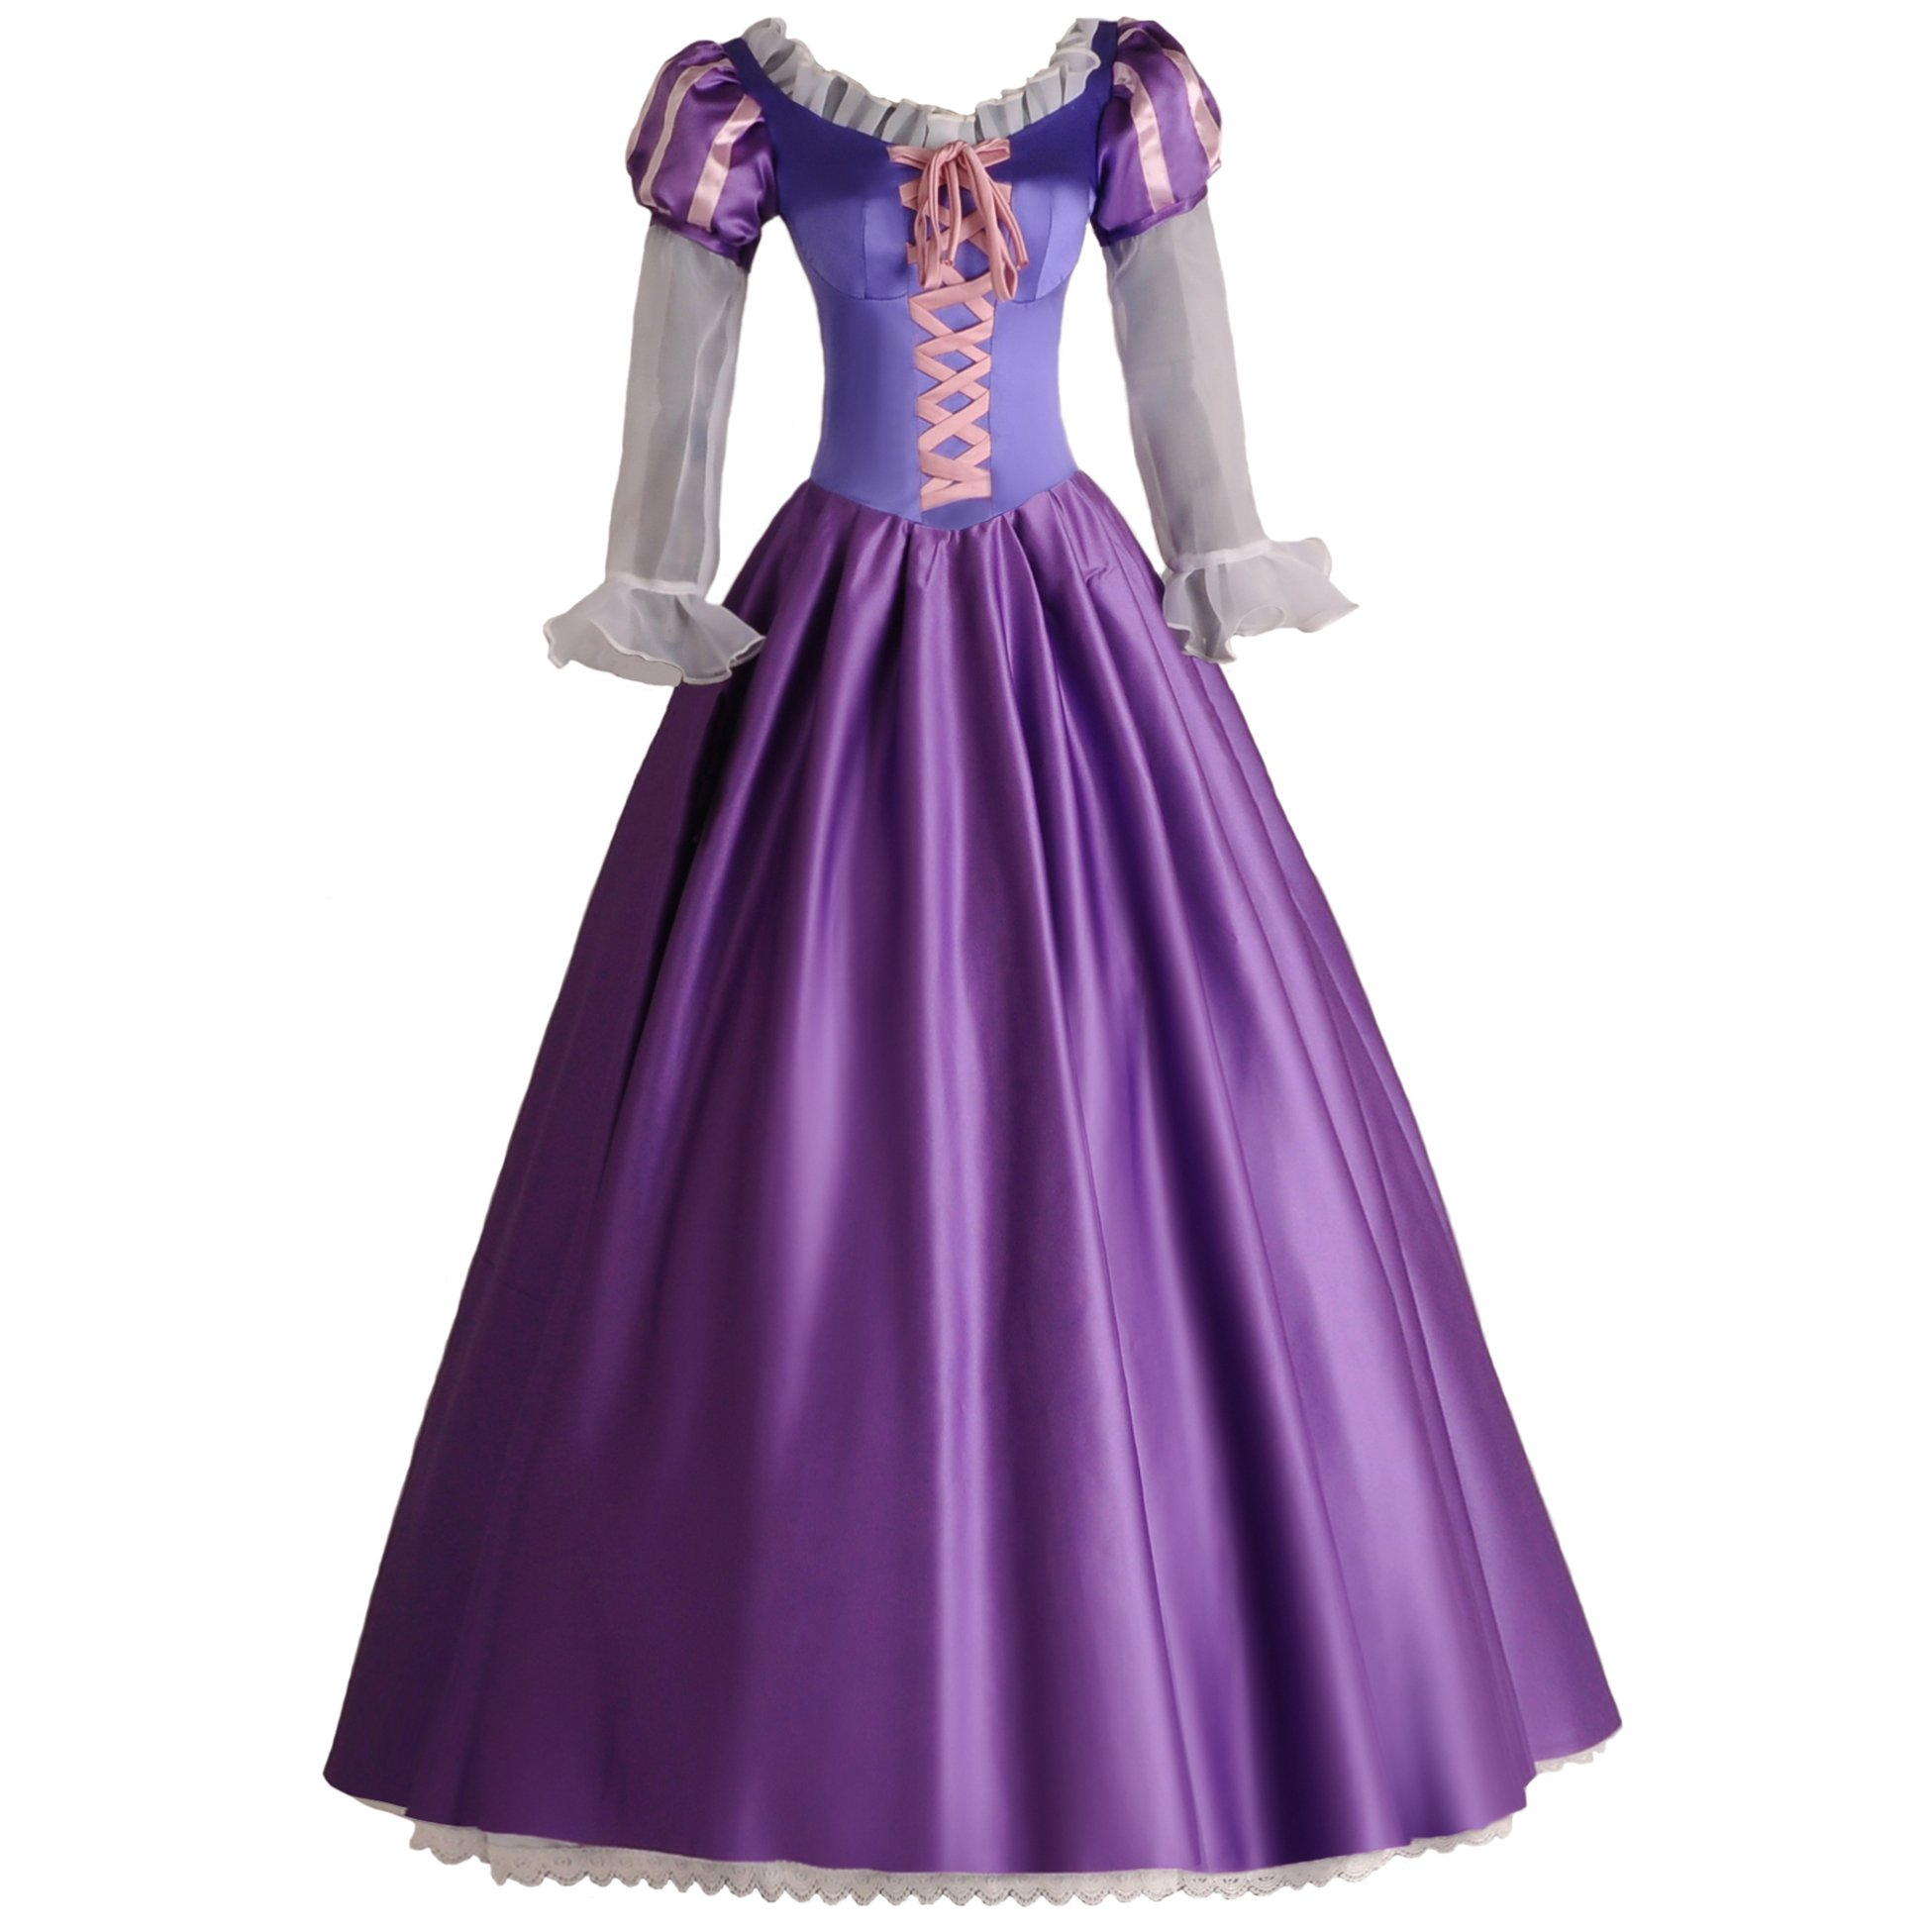 Angelaicos Womens Princess Costume Party Long Purple Victorian Dress